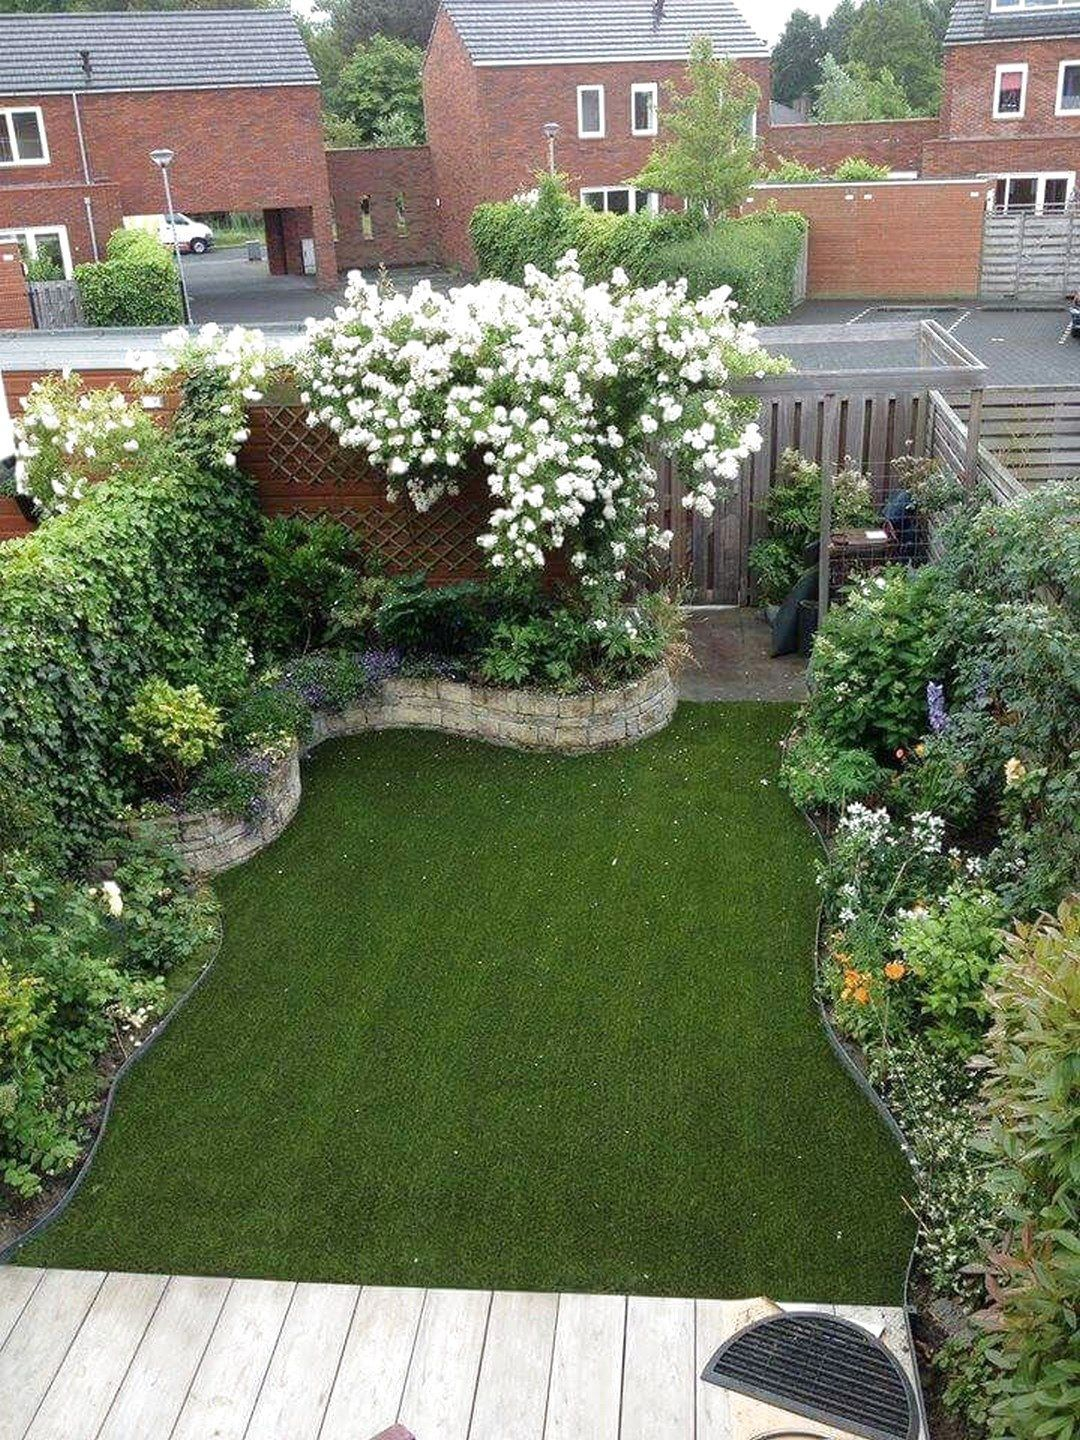 Brilliant Gardening Design Ideas You Need To Know In 202012